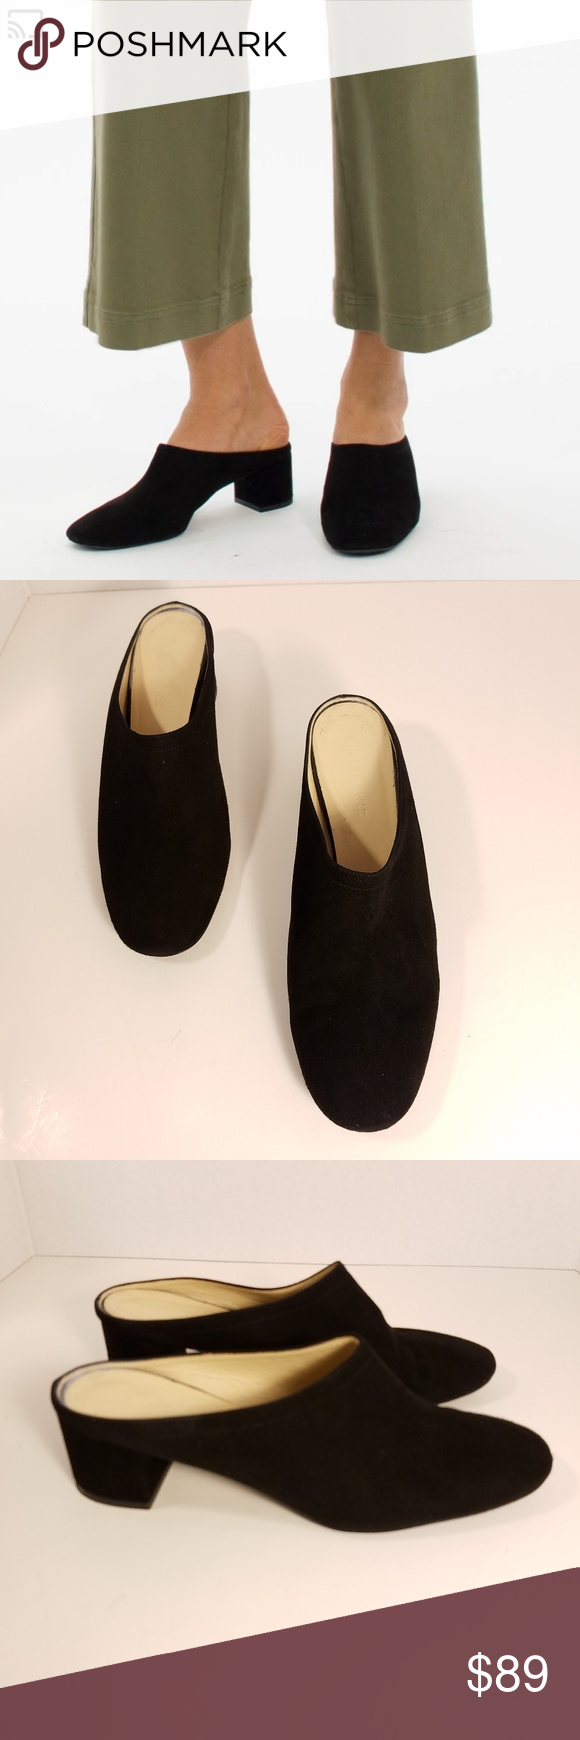 18431a62836 Everlane Black Suede The Day Heel Mule This is a pair of Everlane Black  Suede The Day Heel Mule. - Everlane states these fit true to size - Suede  leather ...